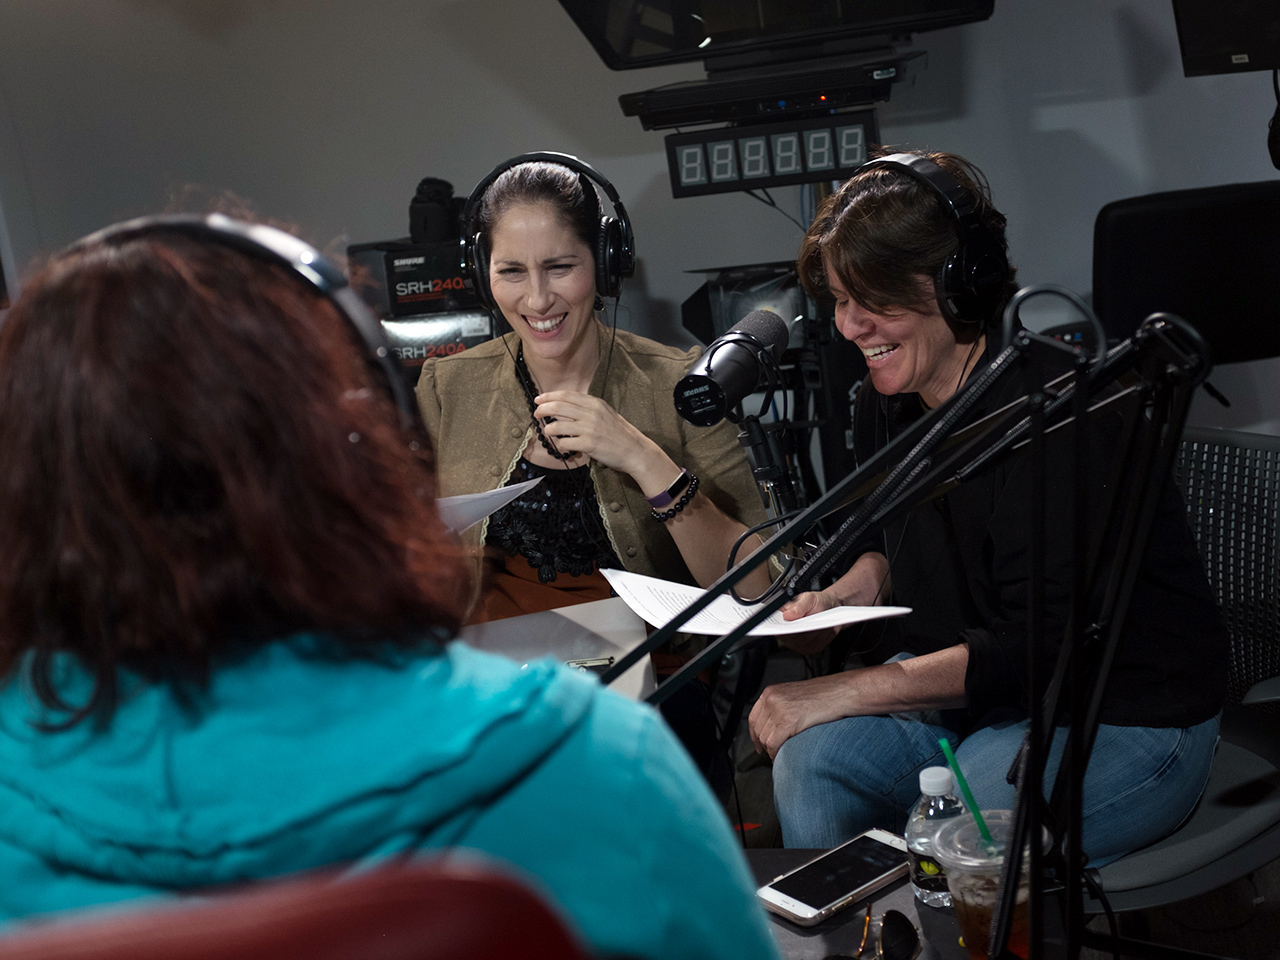 Lauren Goode and Kara Swisher record a podcast